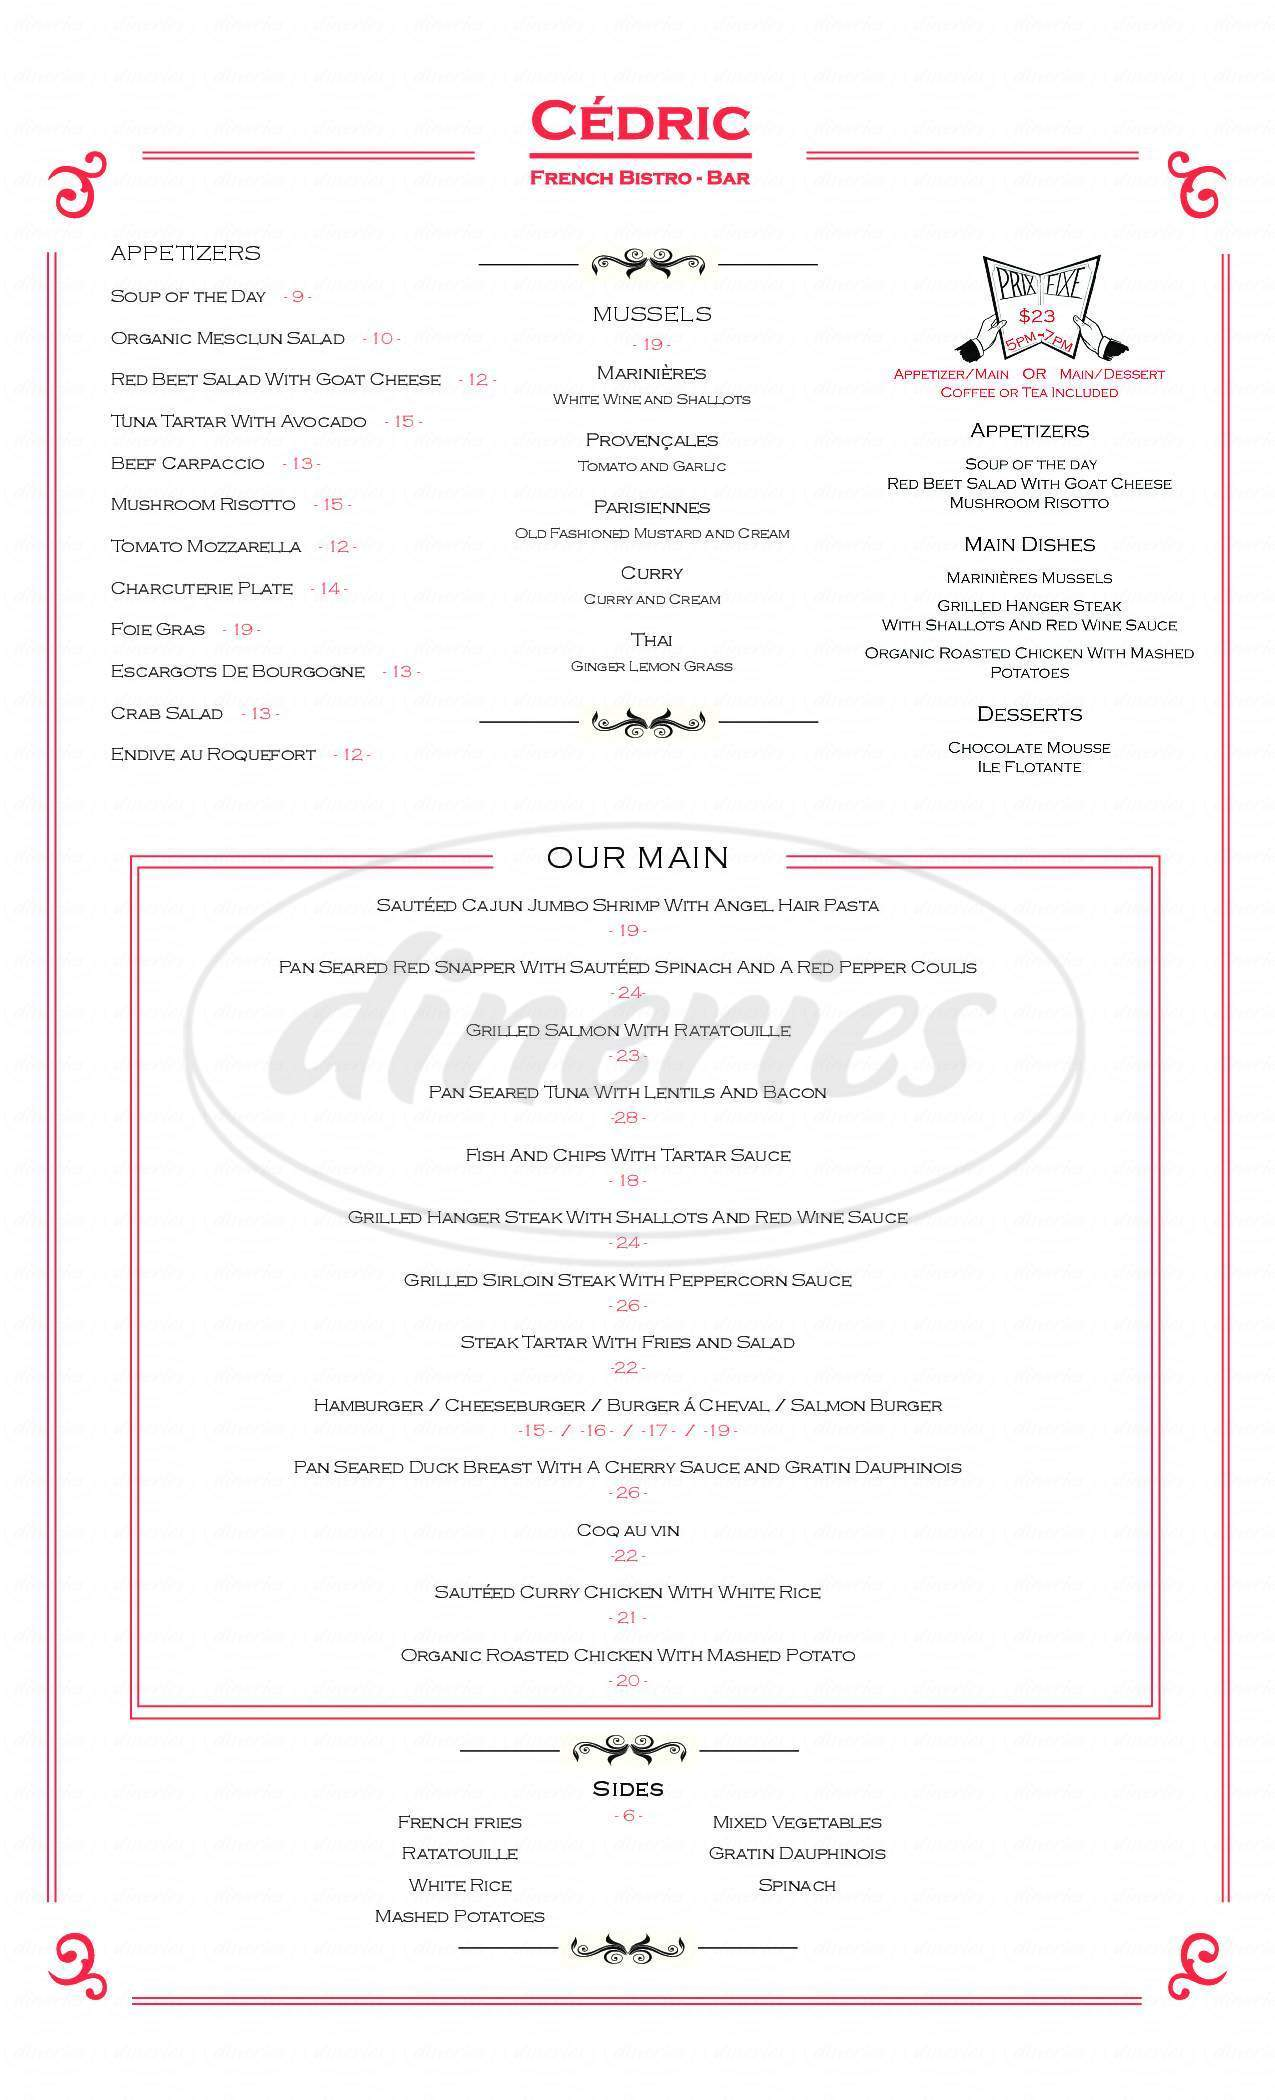 menu for Cedric French Bistro and Bar